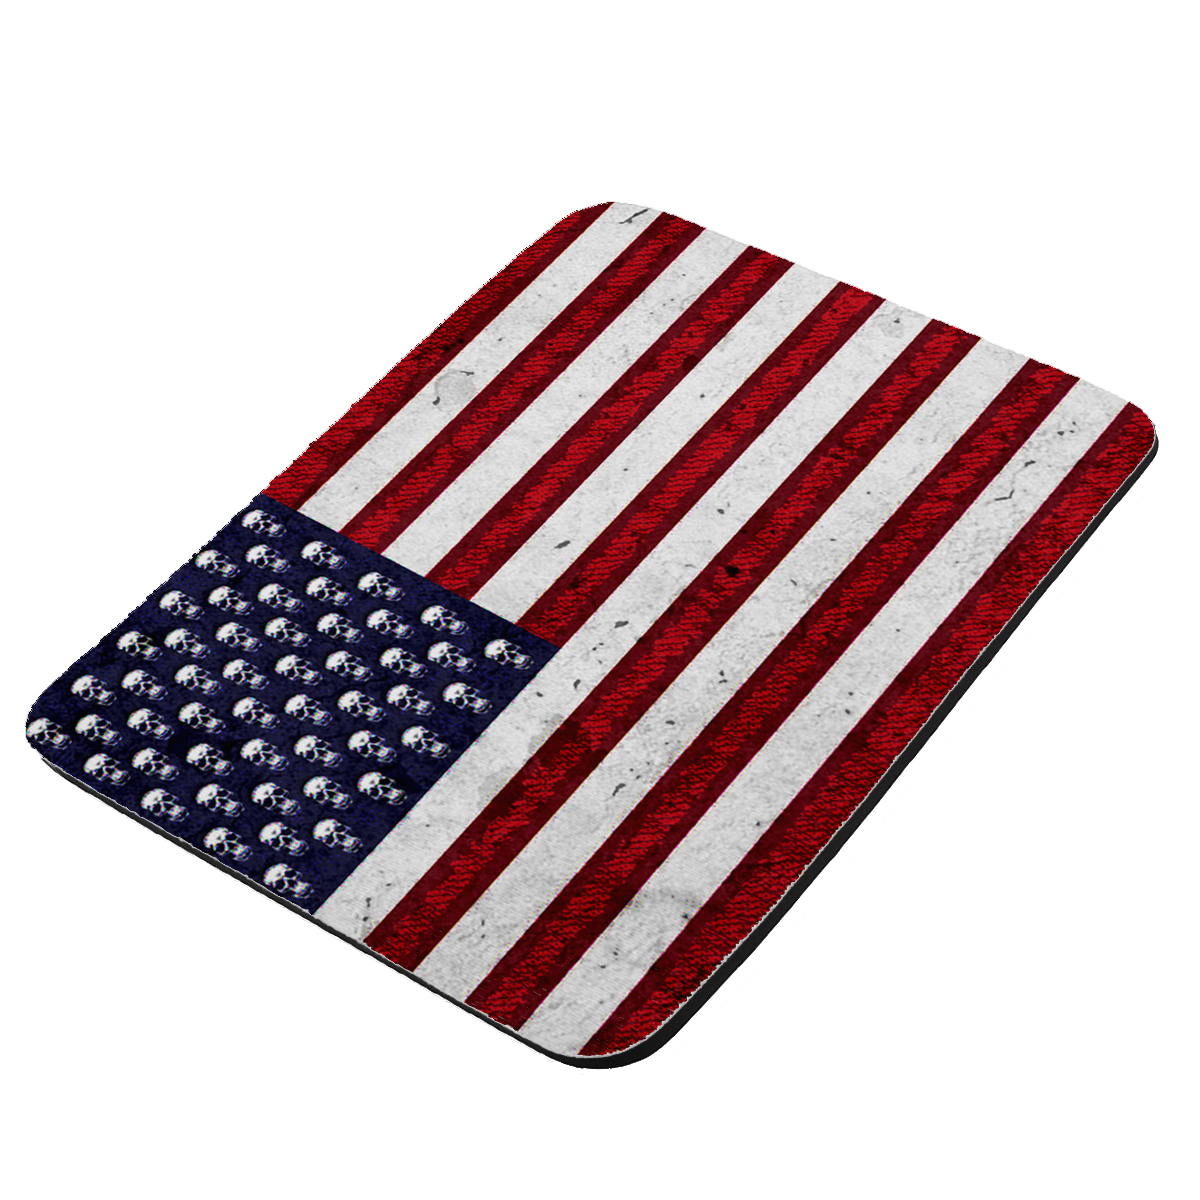 American Flag Pop Art Skulls - KuzmarK Mousepad / Hot Pad / Trivet